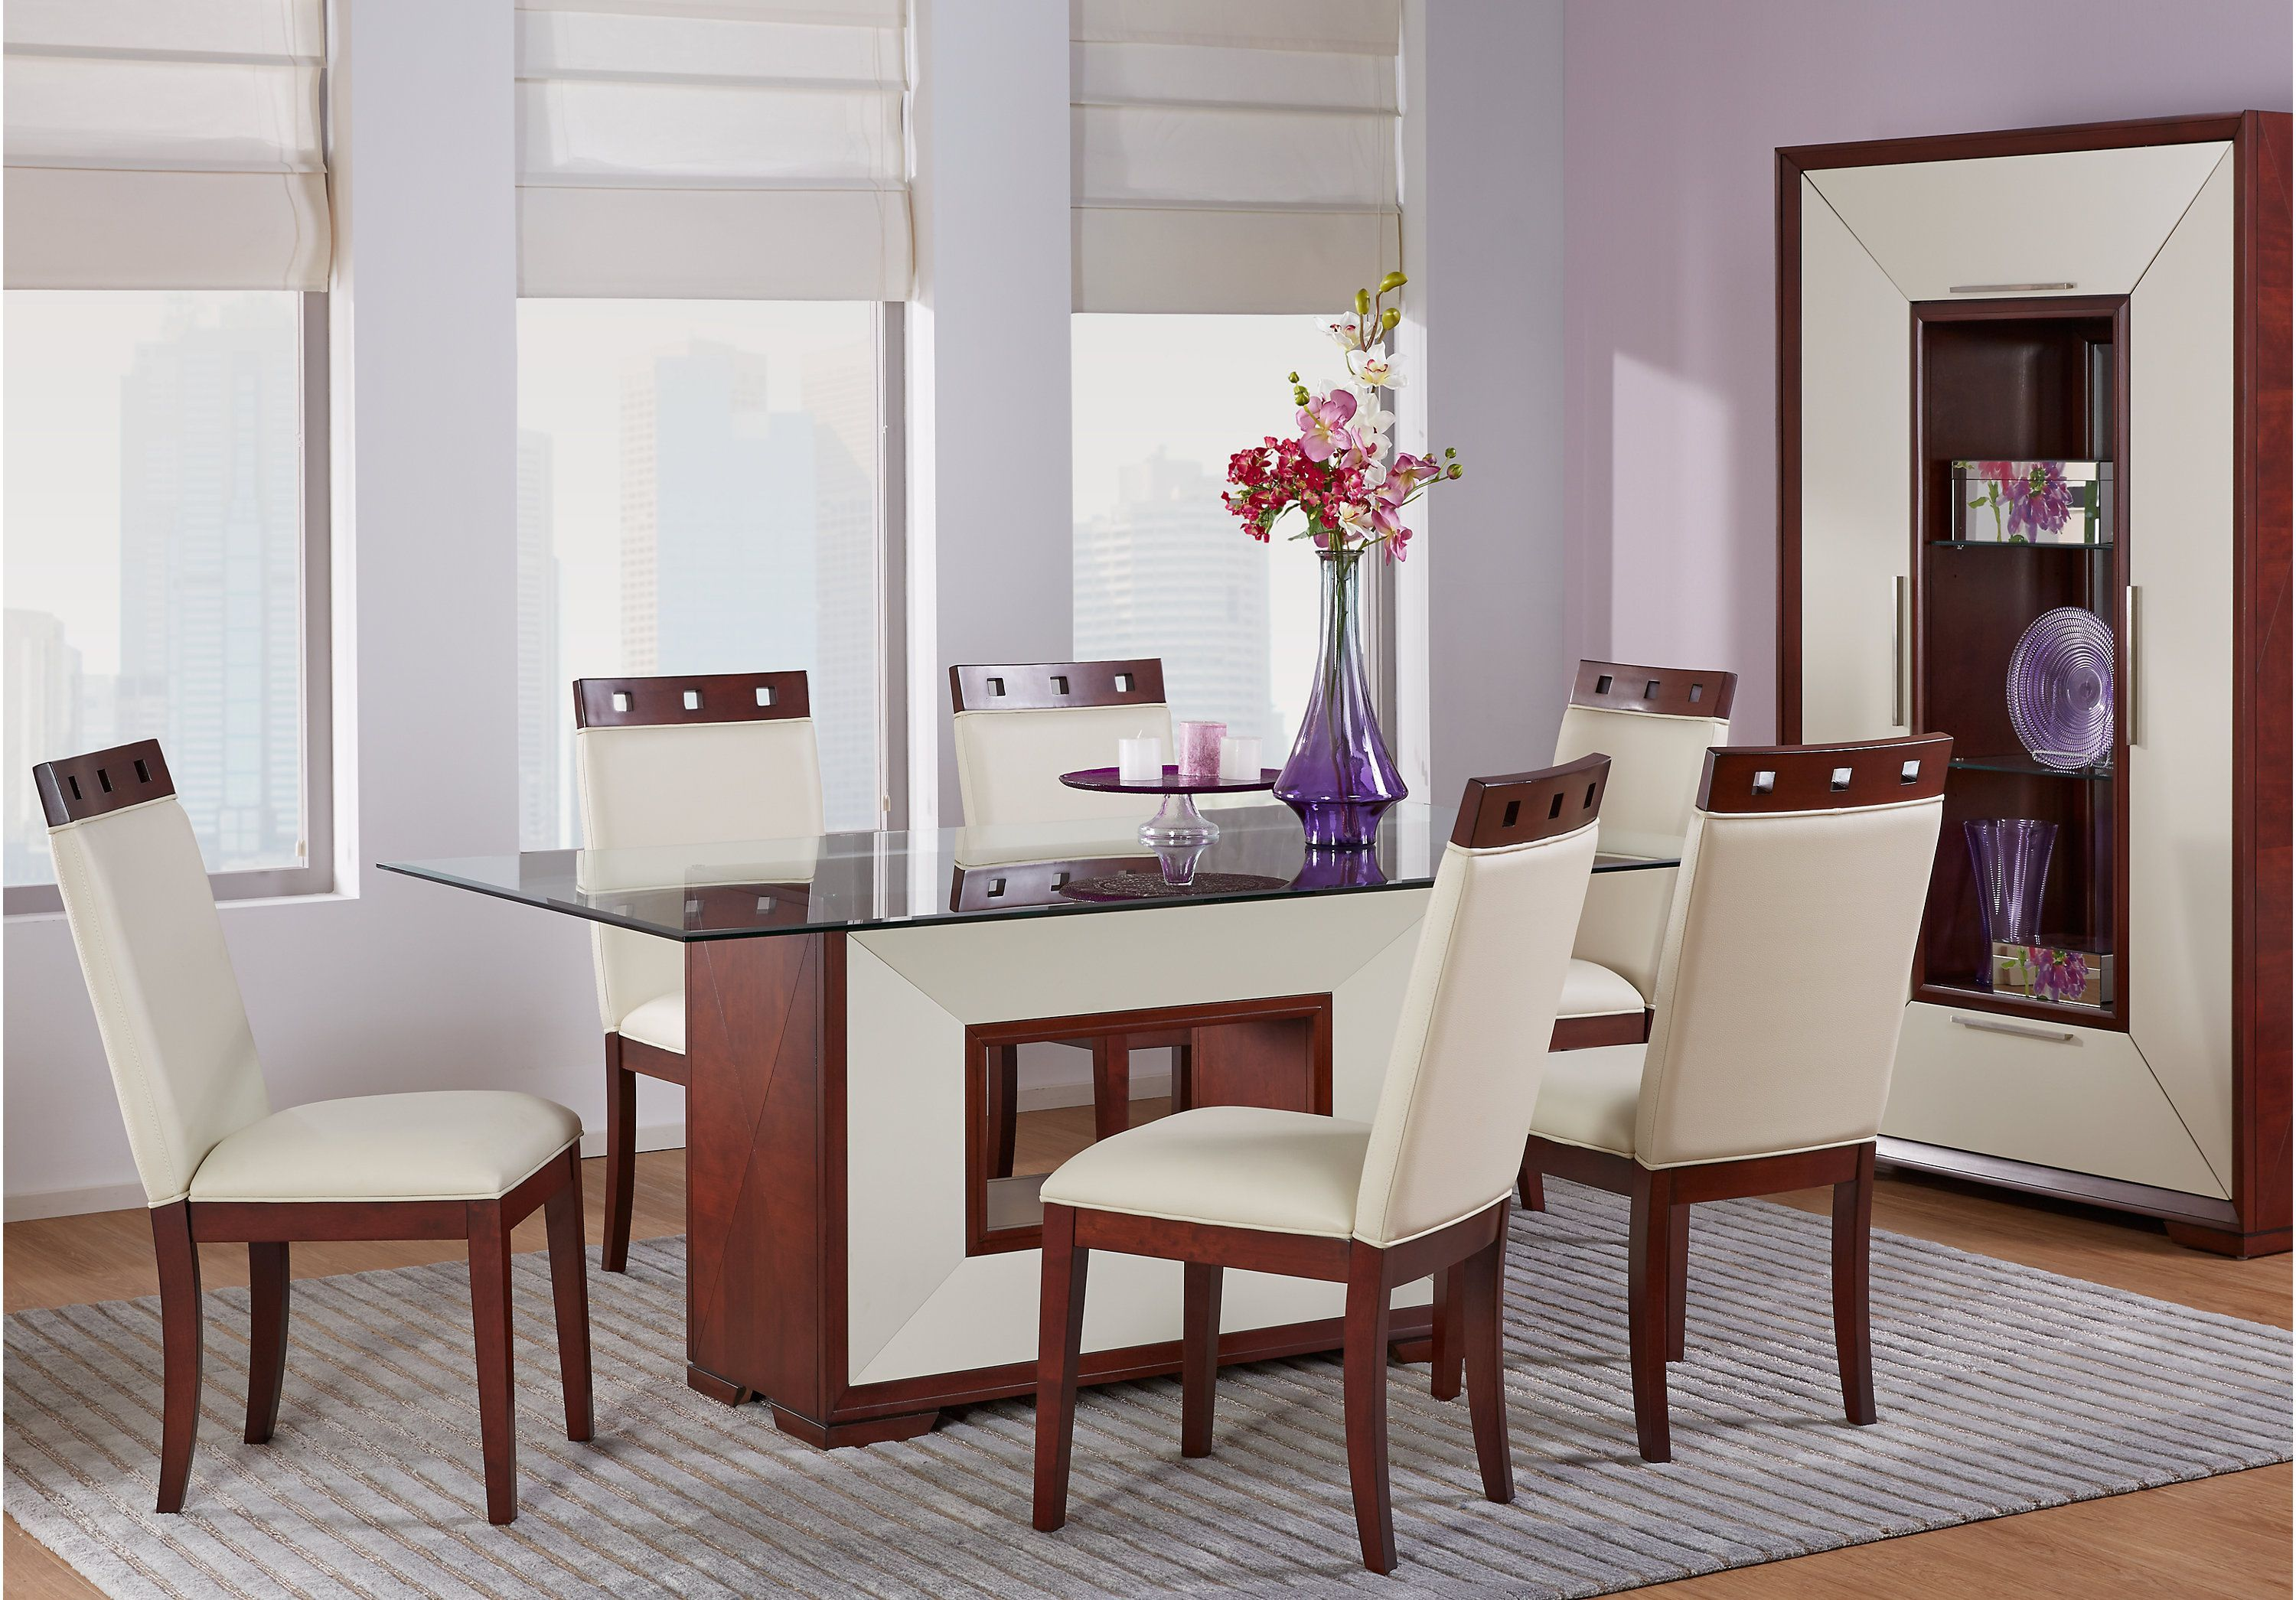 11 Smart Designs Of How To Make 3 Piece Living Room Set Cheap Minimalist Dining Room Dining Room Sets Country Dining Rooms